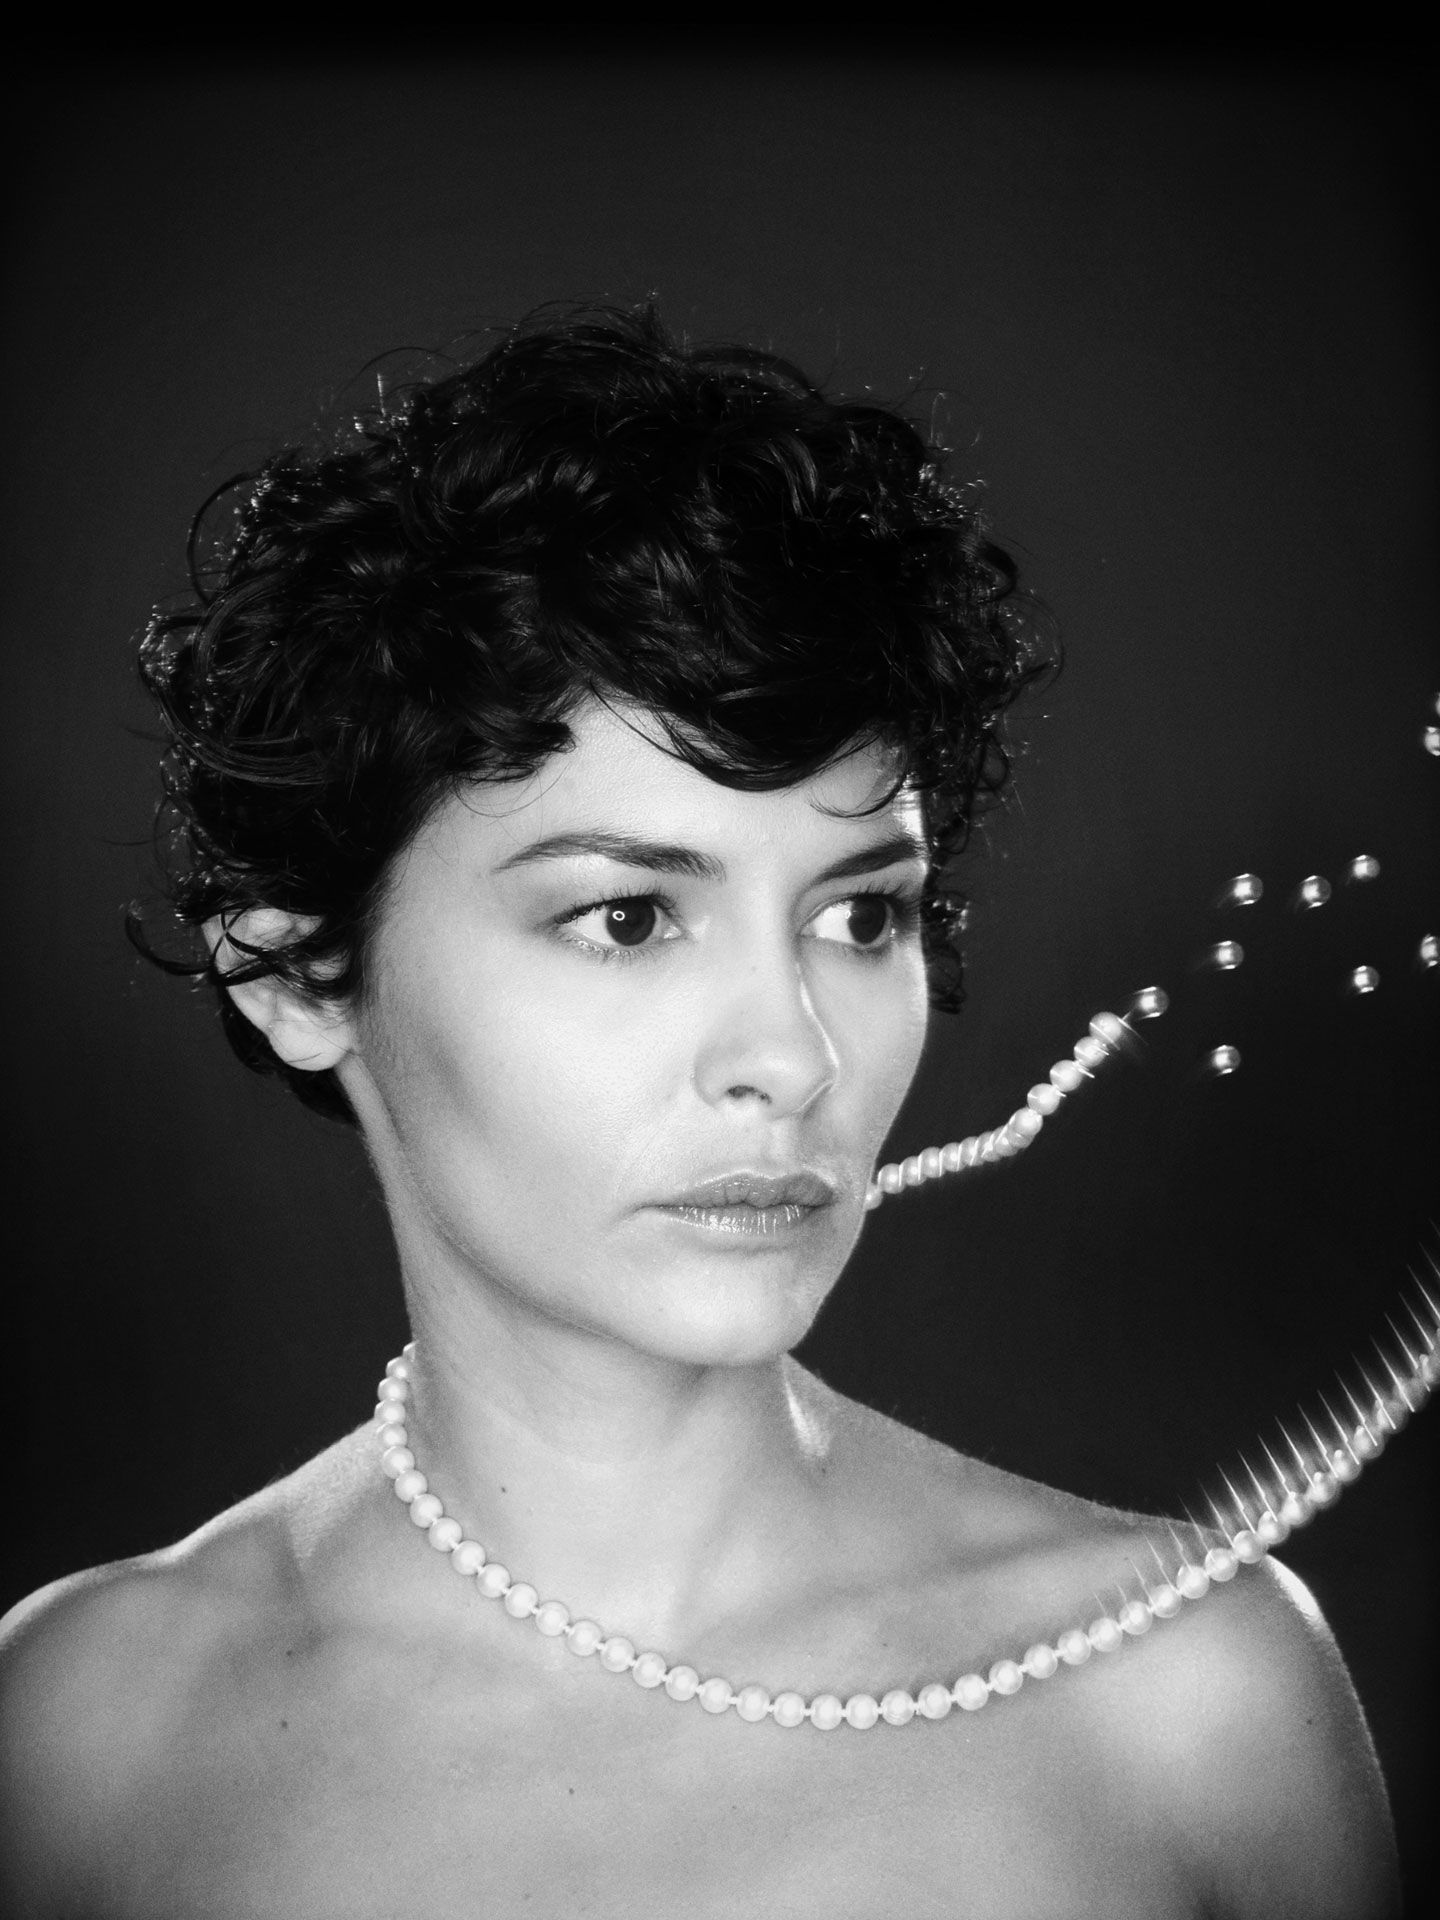 Black and white portrait of Audrey Tautou with a pearl necklace exploding and beads flying.